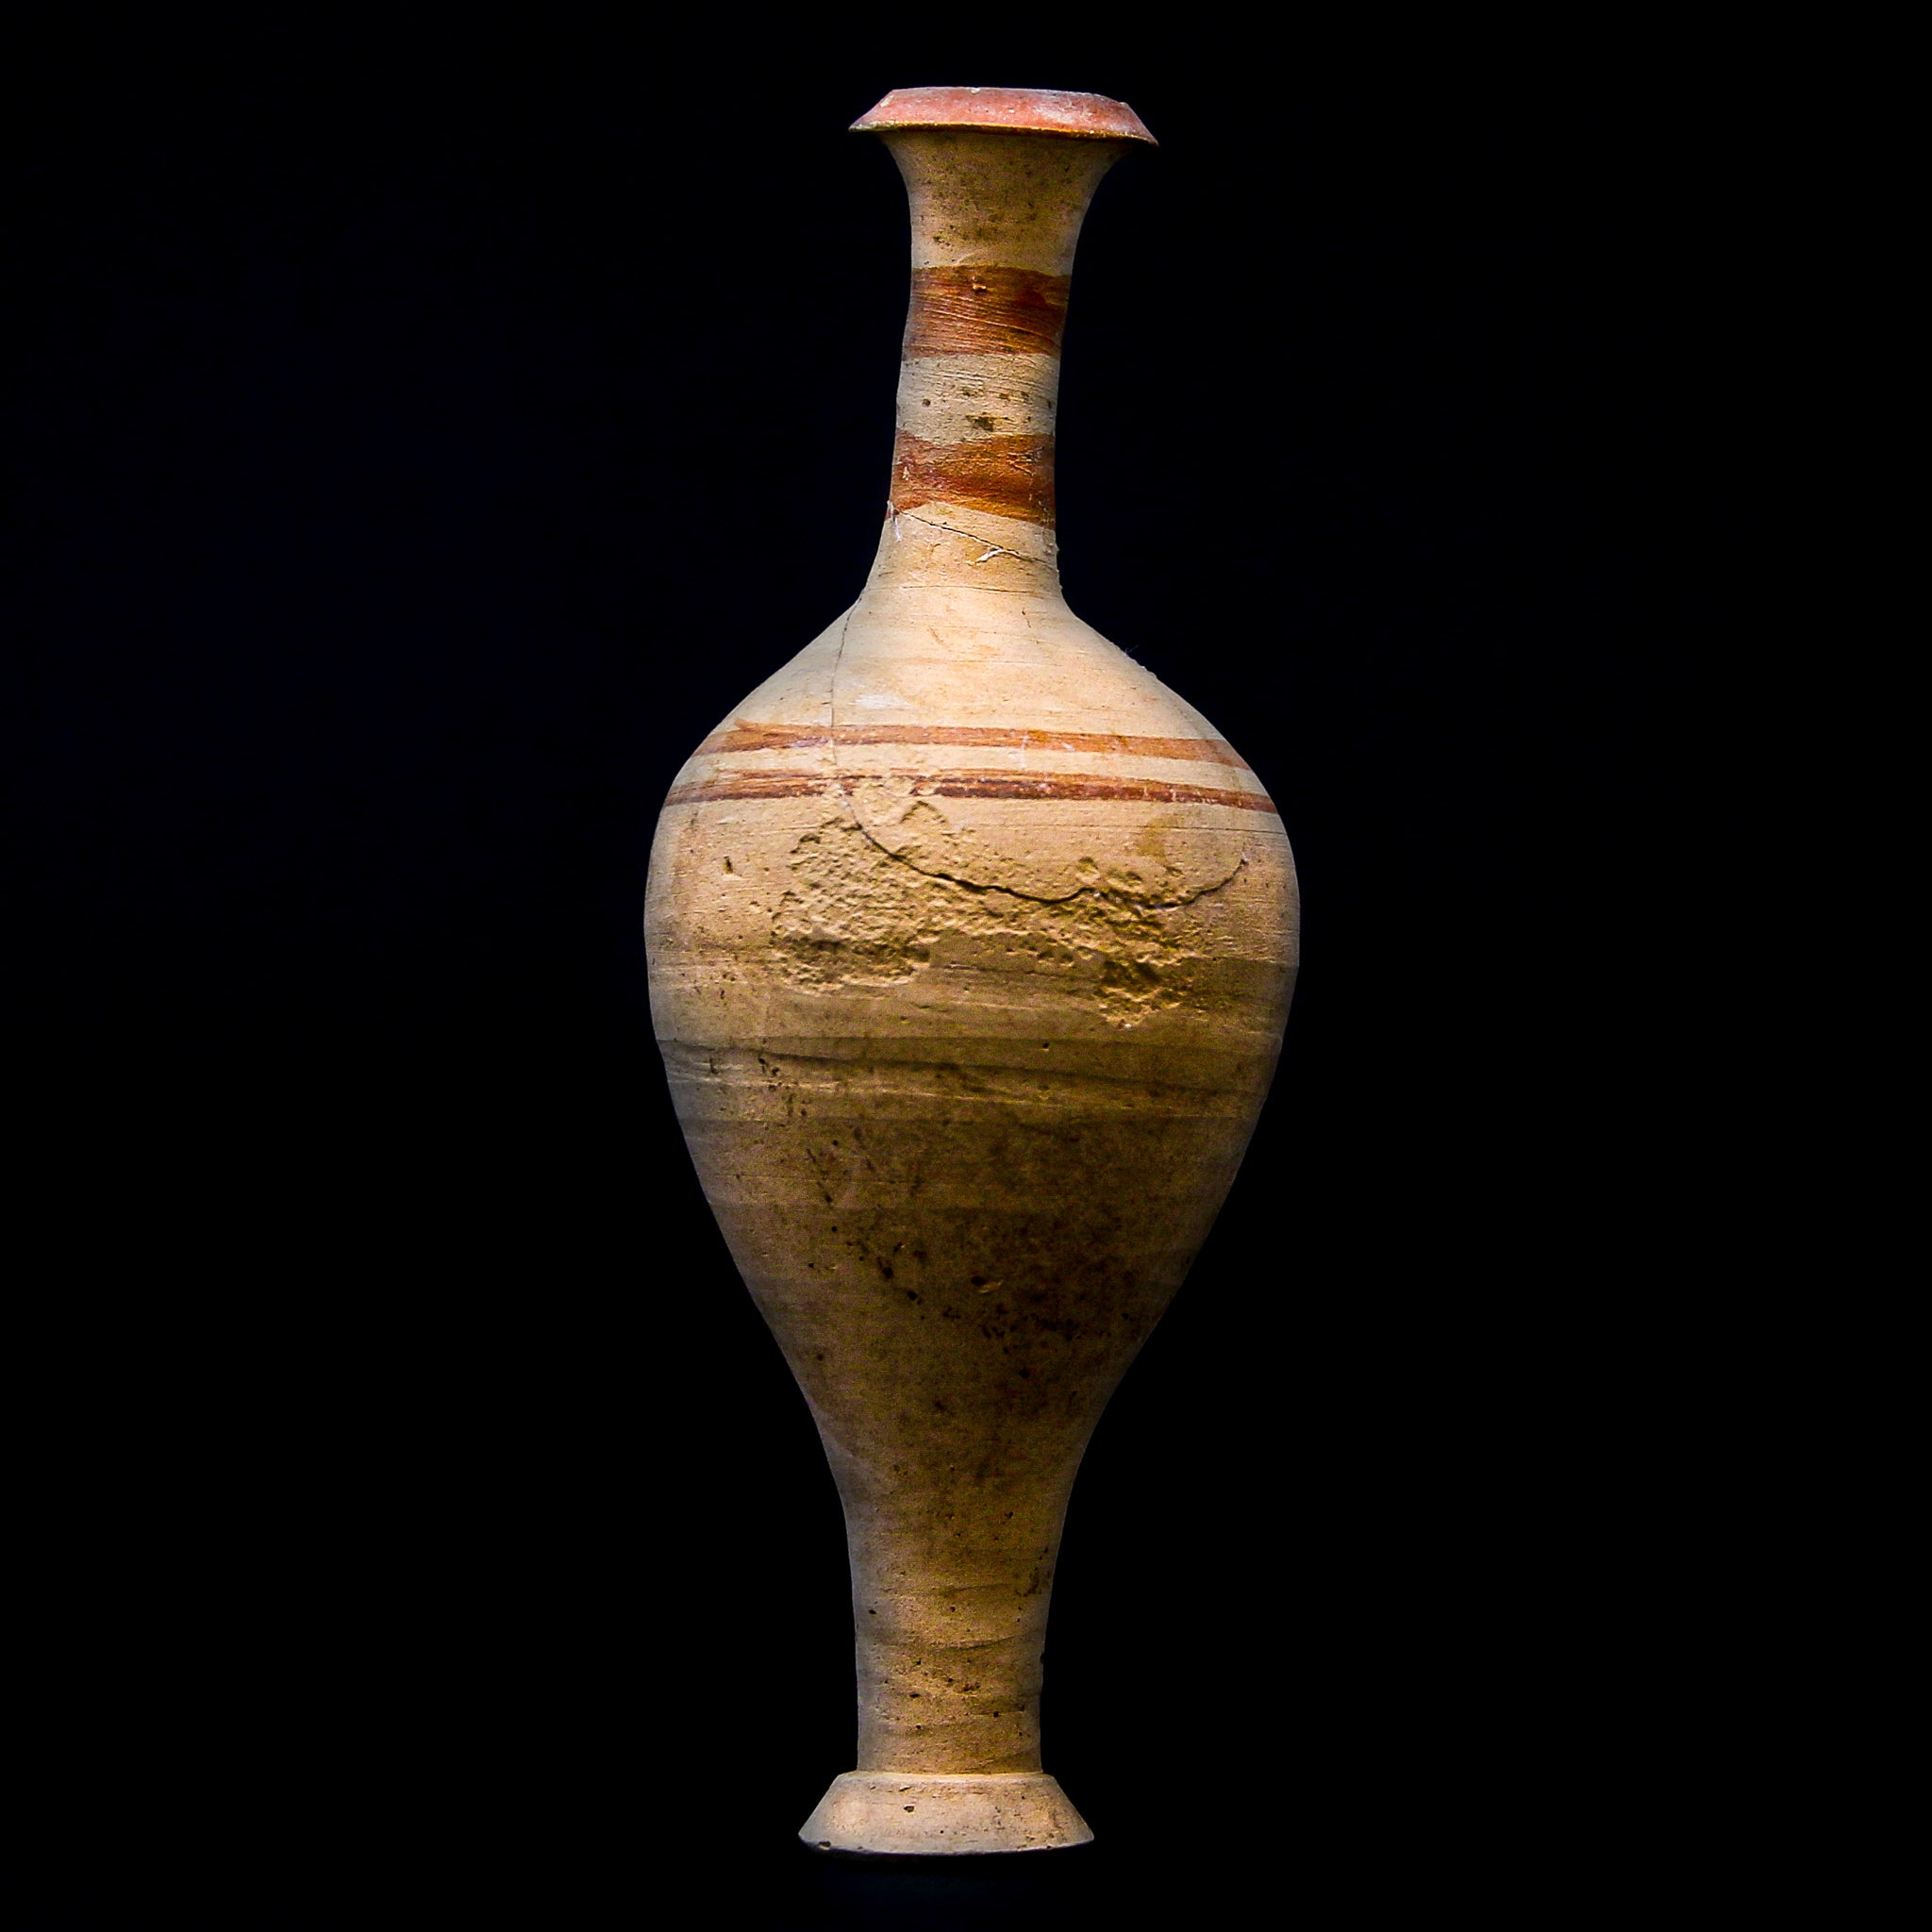 A Greek Ceramic Amphora with Crimson Rings | 5th-3rd century BC